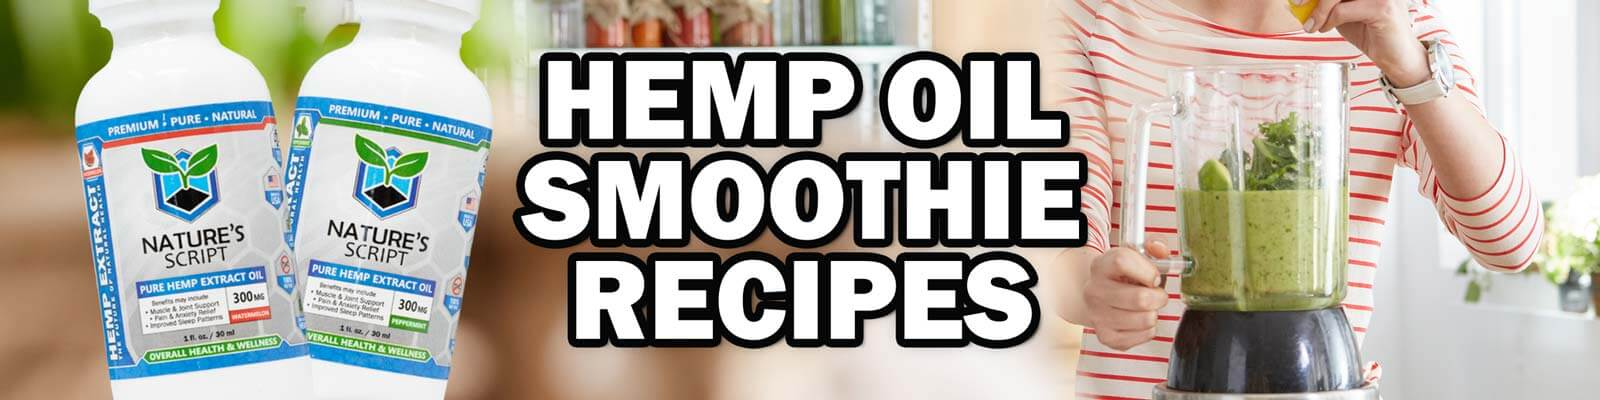 Try our Hemp Oil smoothie recipes